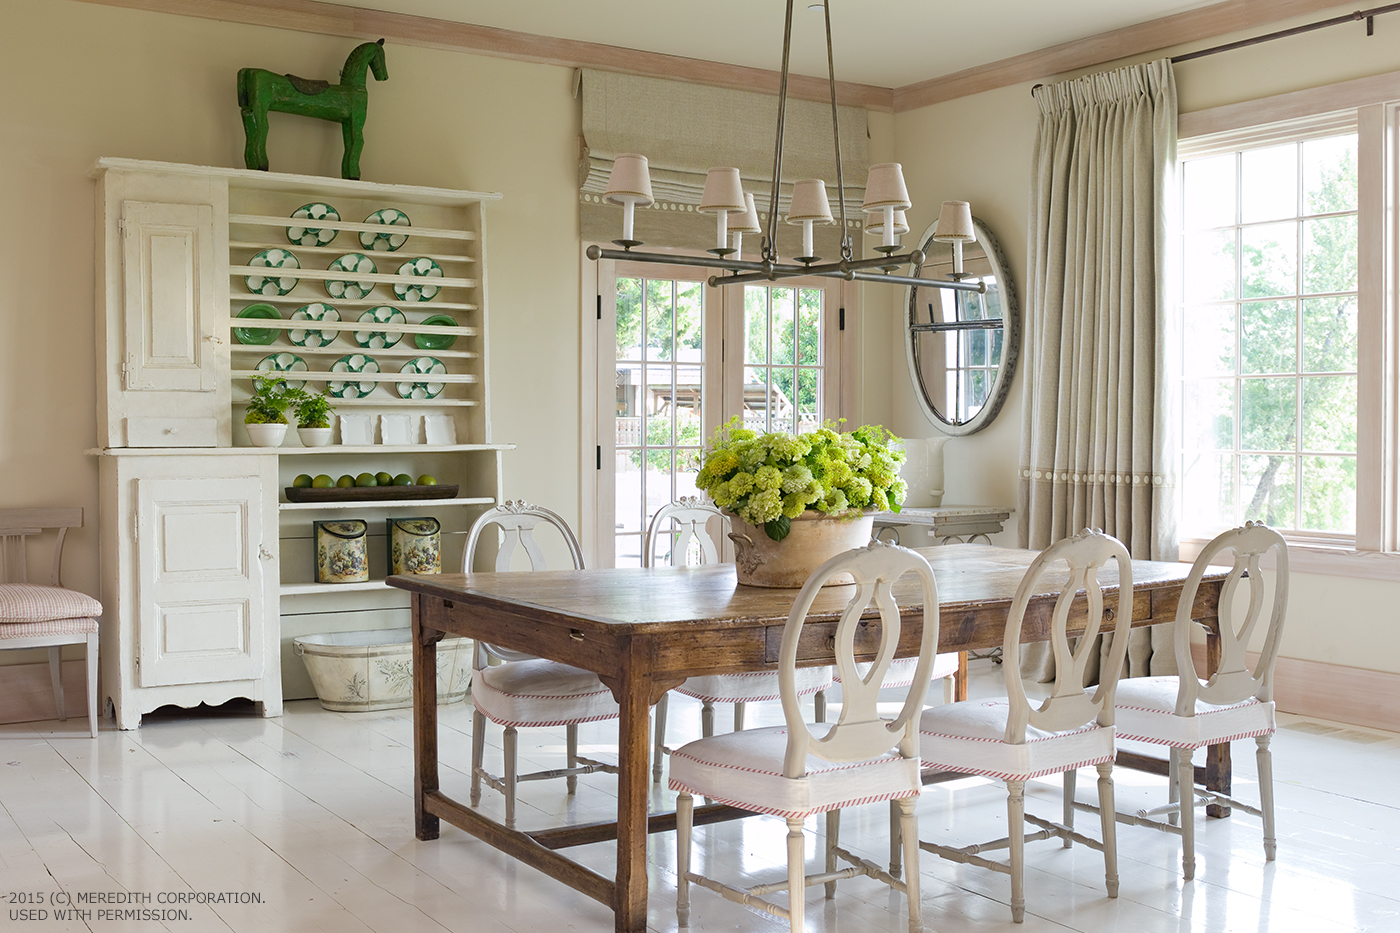 European Elegance Tips For Decorating In Country French Style Better Homes And Gardens Real Estate Life